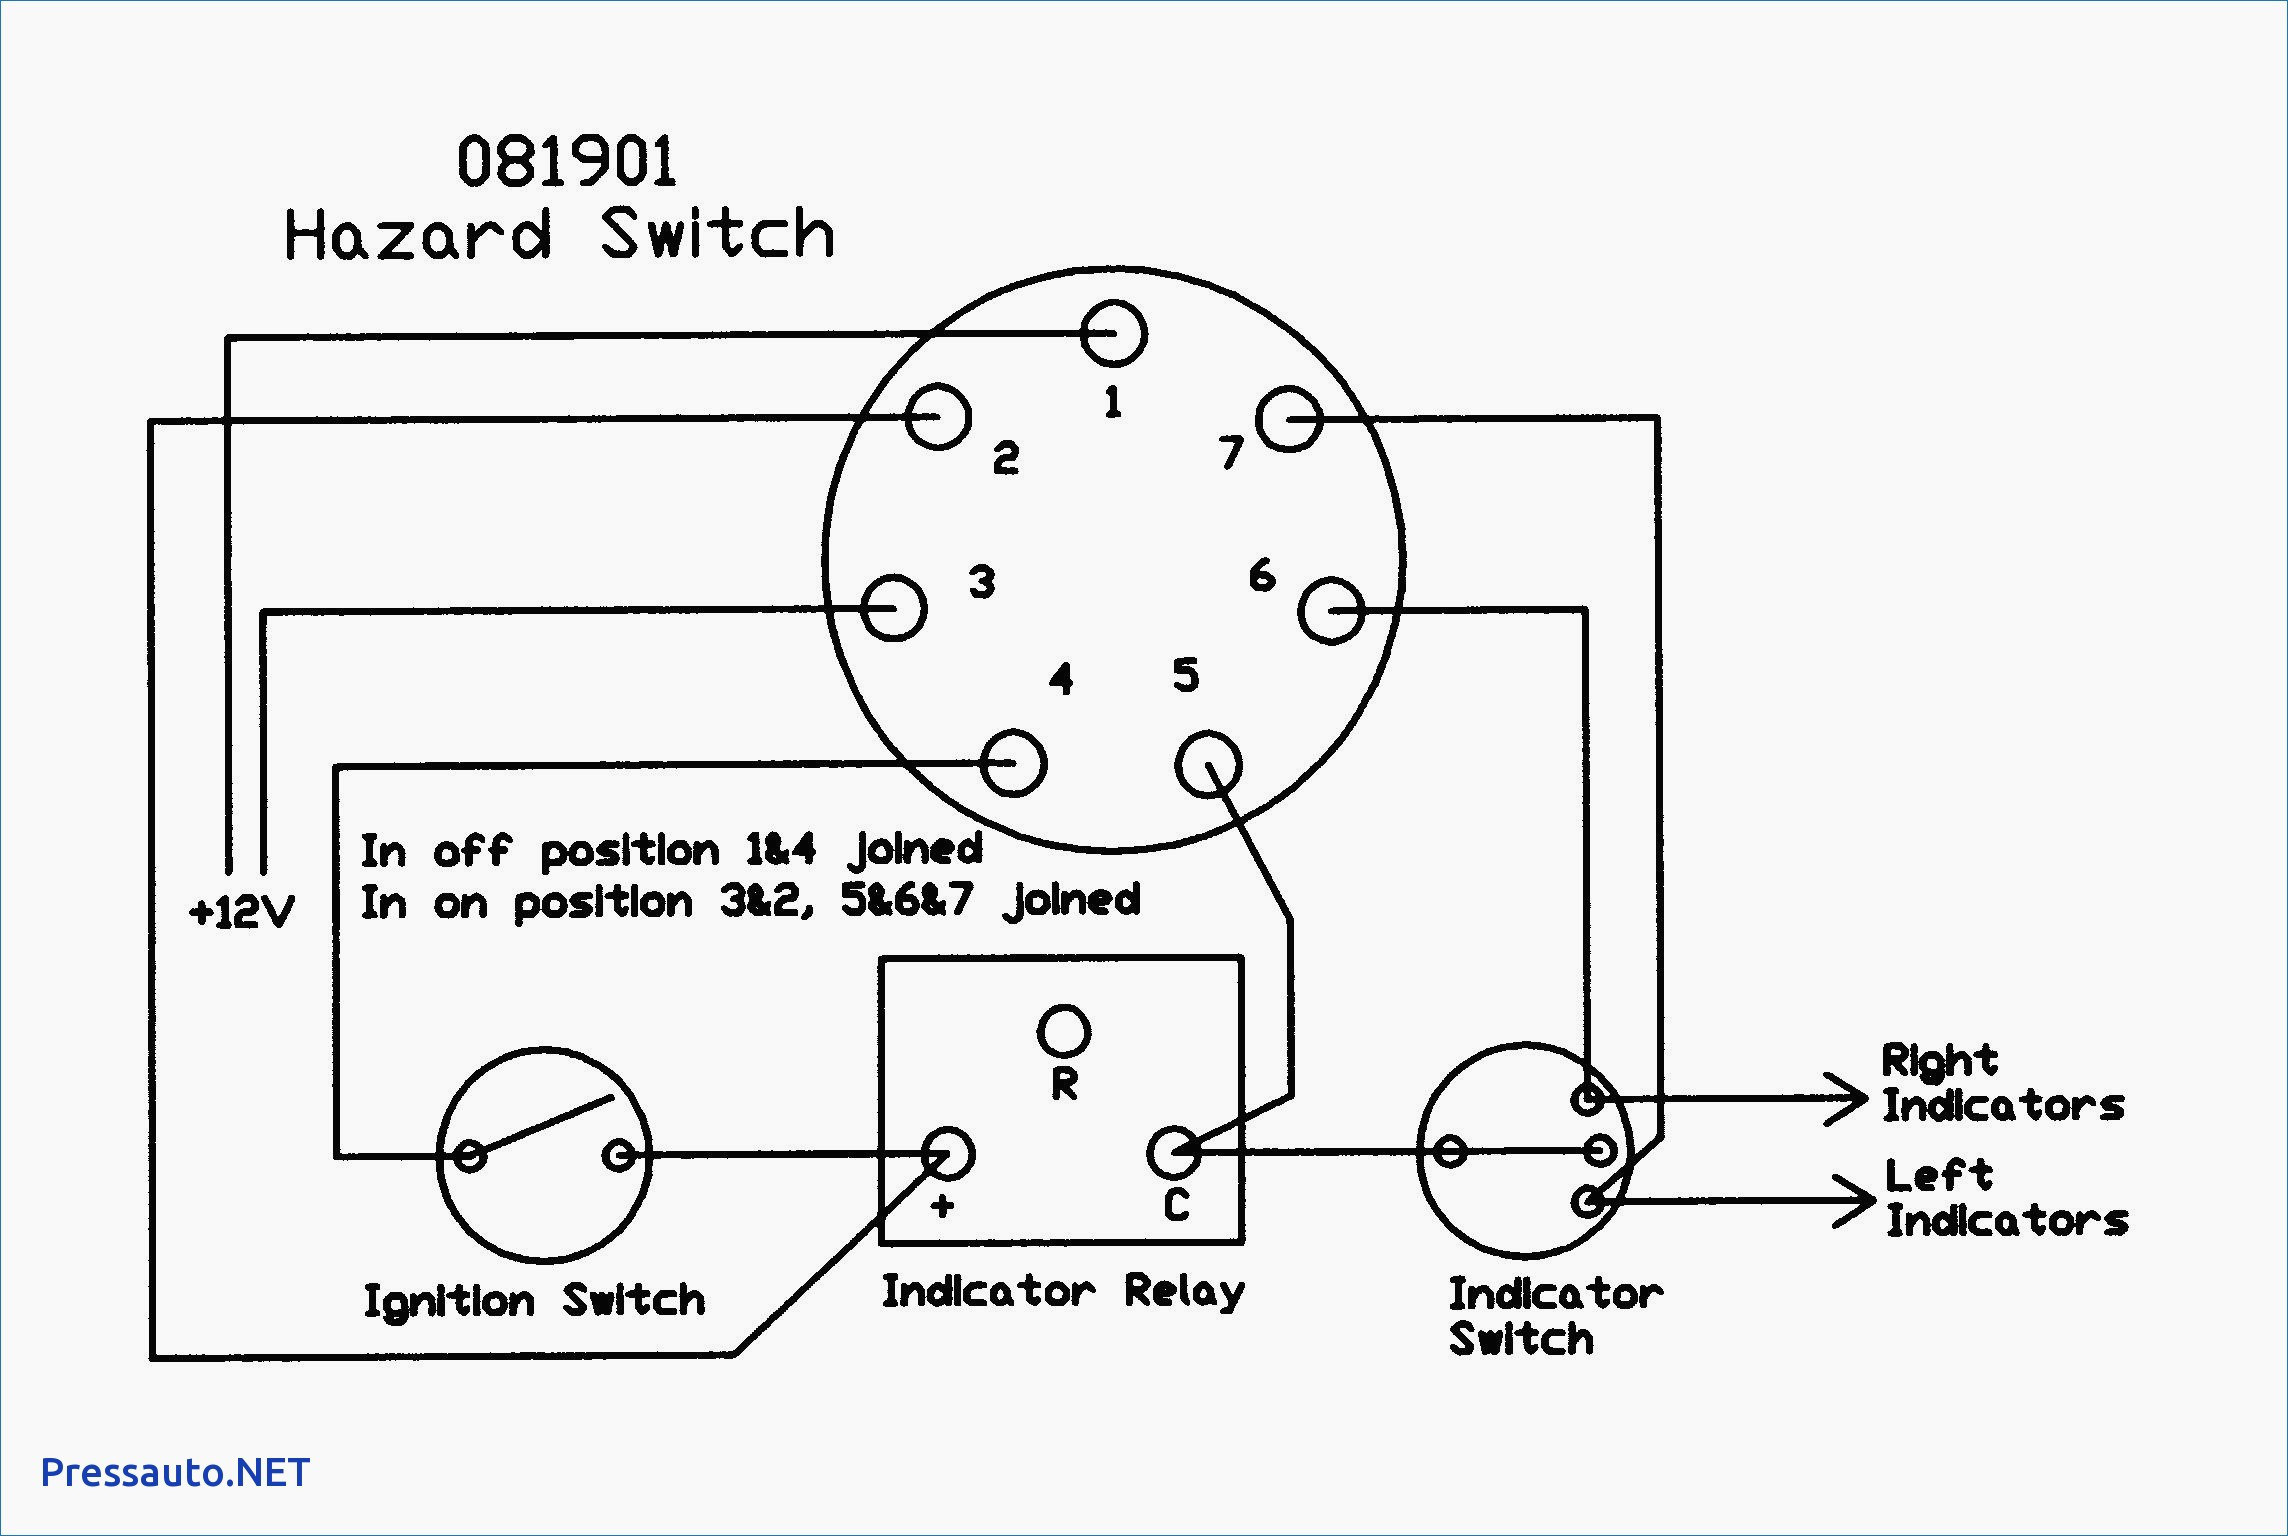 3 position ignition switch wiring diagram Download-Lucas Generator Wiring  Diagram Refrence Ignition Switch Wiring